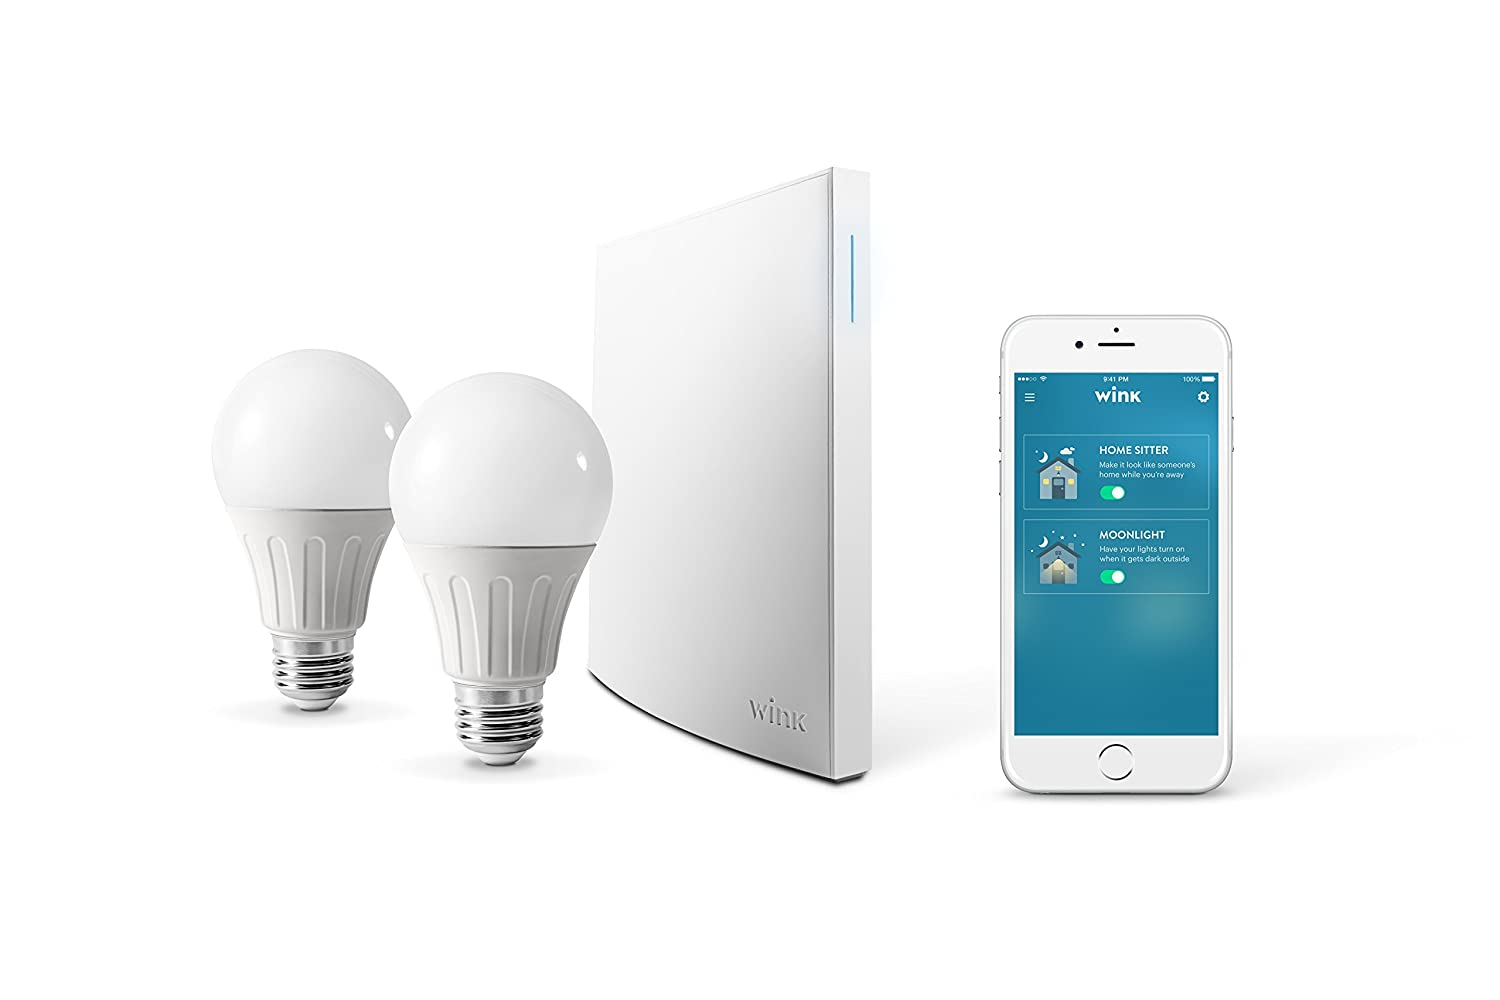 Wink Bright Smart Home Lighting Starter Kit With Hub 2 Led Light Emergency Wiring Diagram Together Rj45 Socket Sylvania Bulbs Compatible Amazon Alexa And Google Assistant